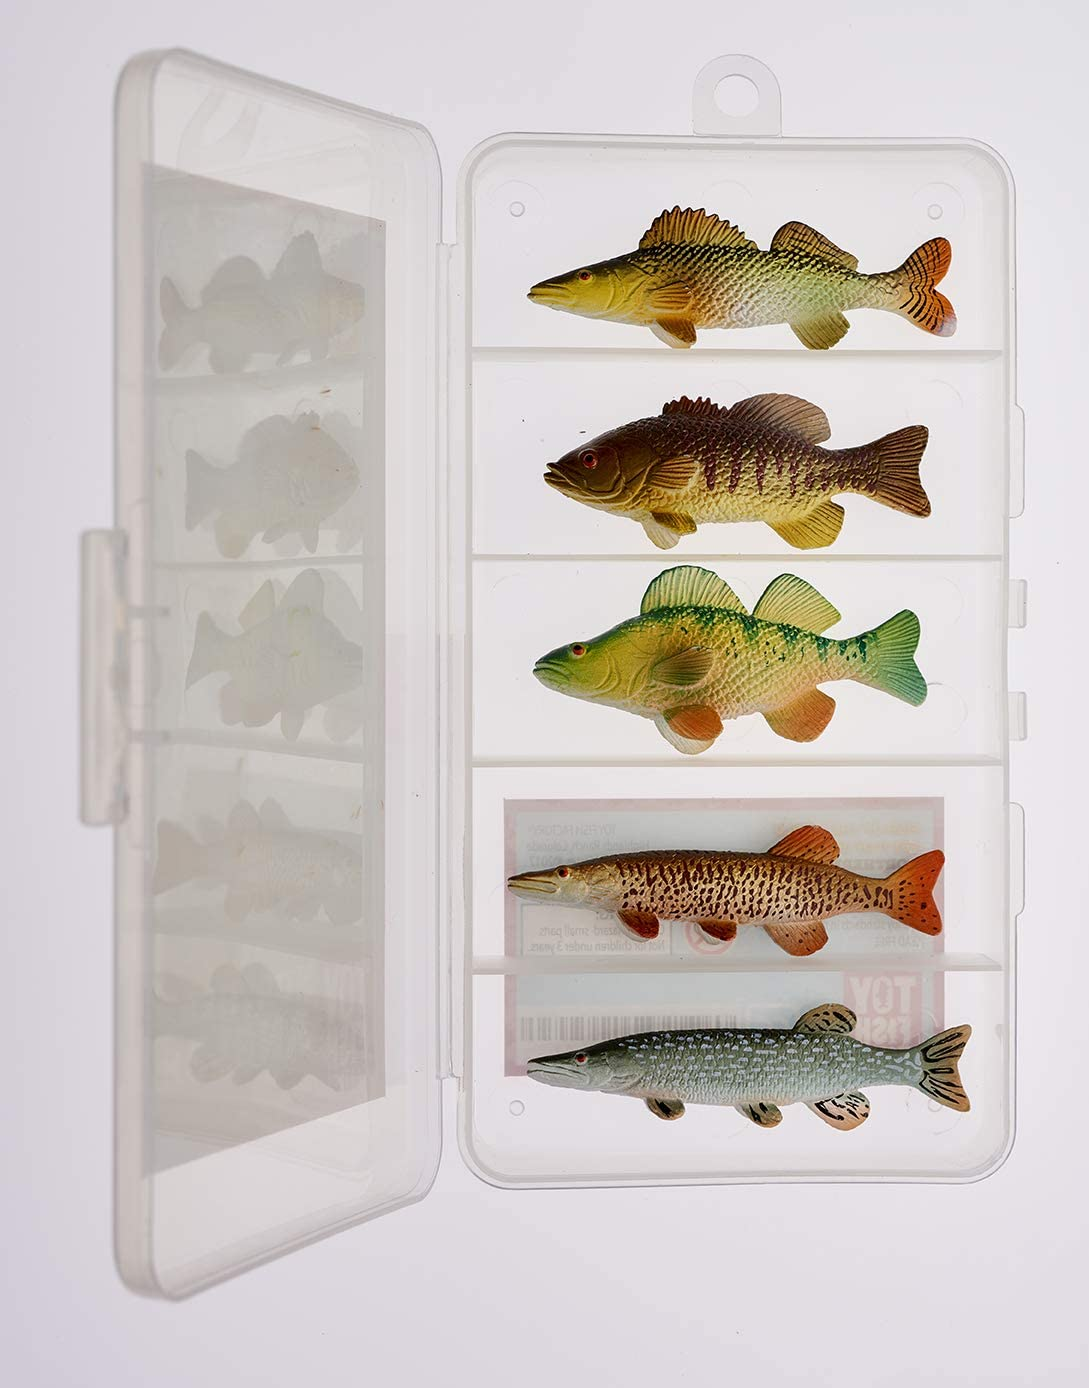 Northern Angler Collection Toy Fish Set | 5 Toy Fish | Toy Bass | Toy Pike |Toy Walleye | Toy Musky | Fish Figurine Toys | Musky Fishing | Northwoods Cabin Decor by Toy Fish Factory